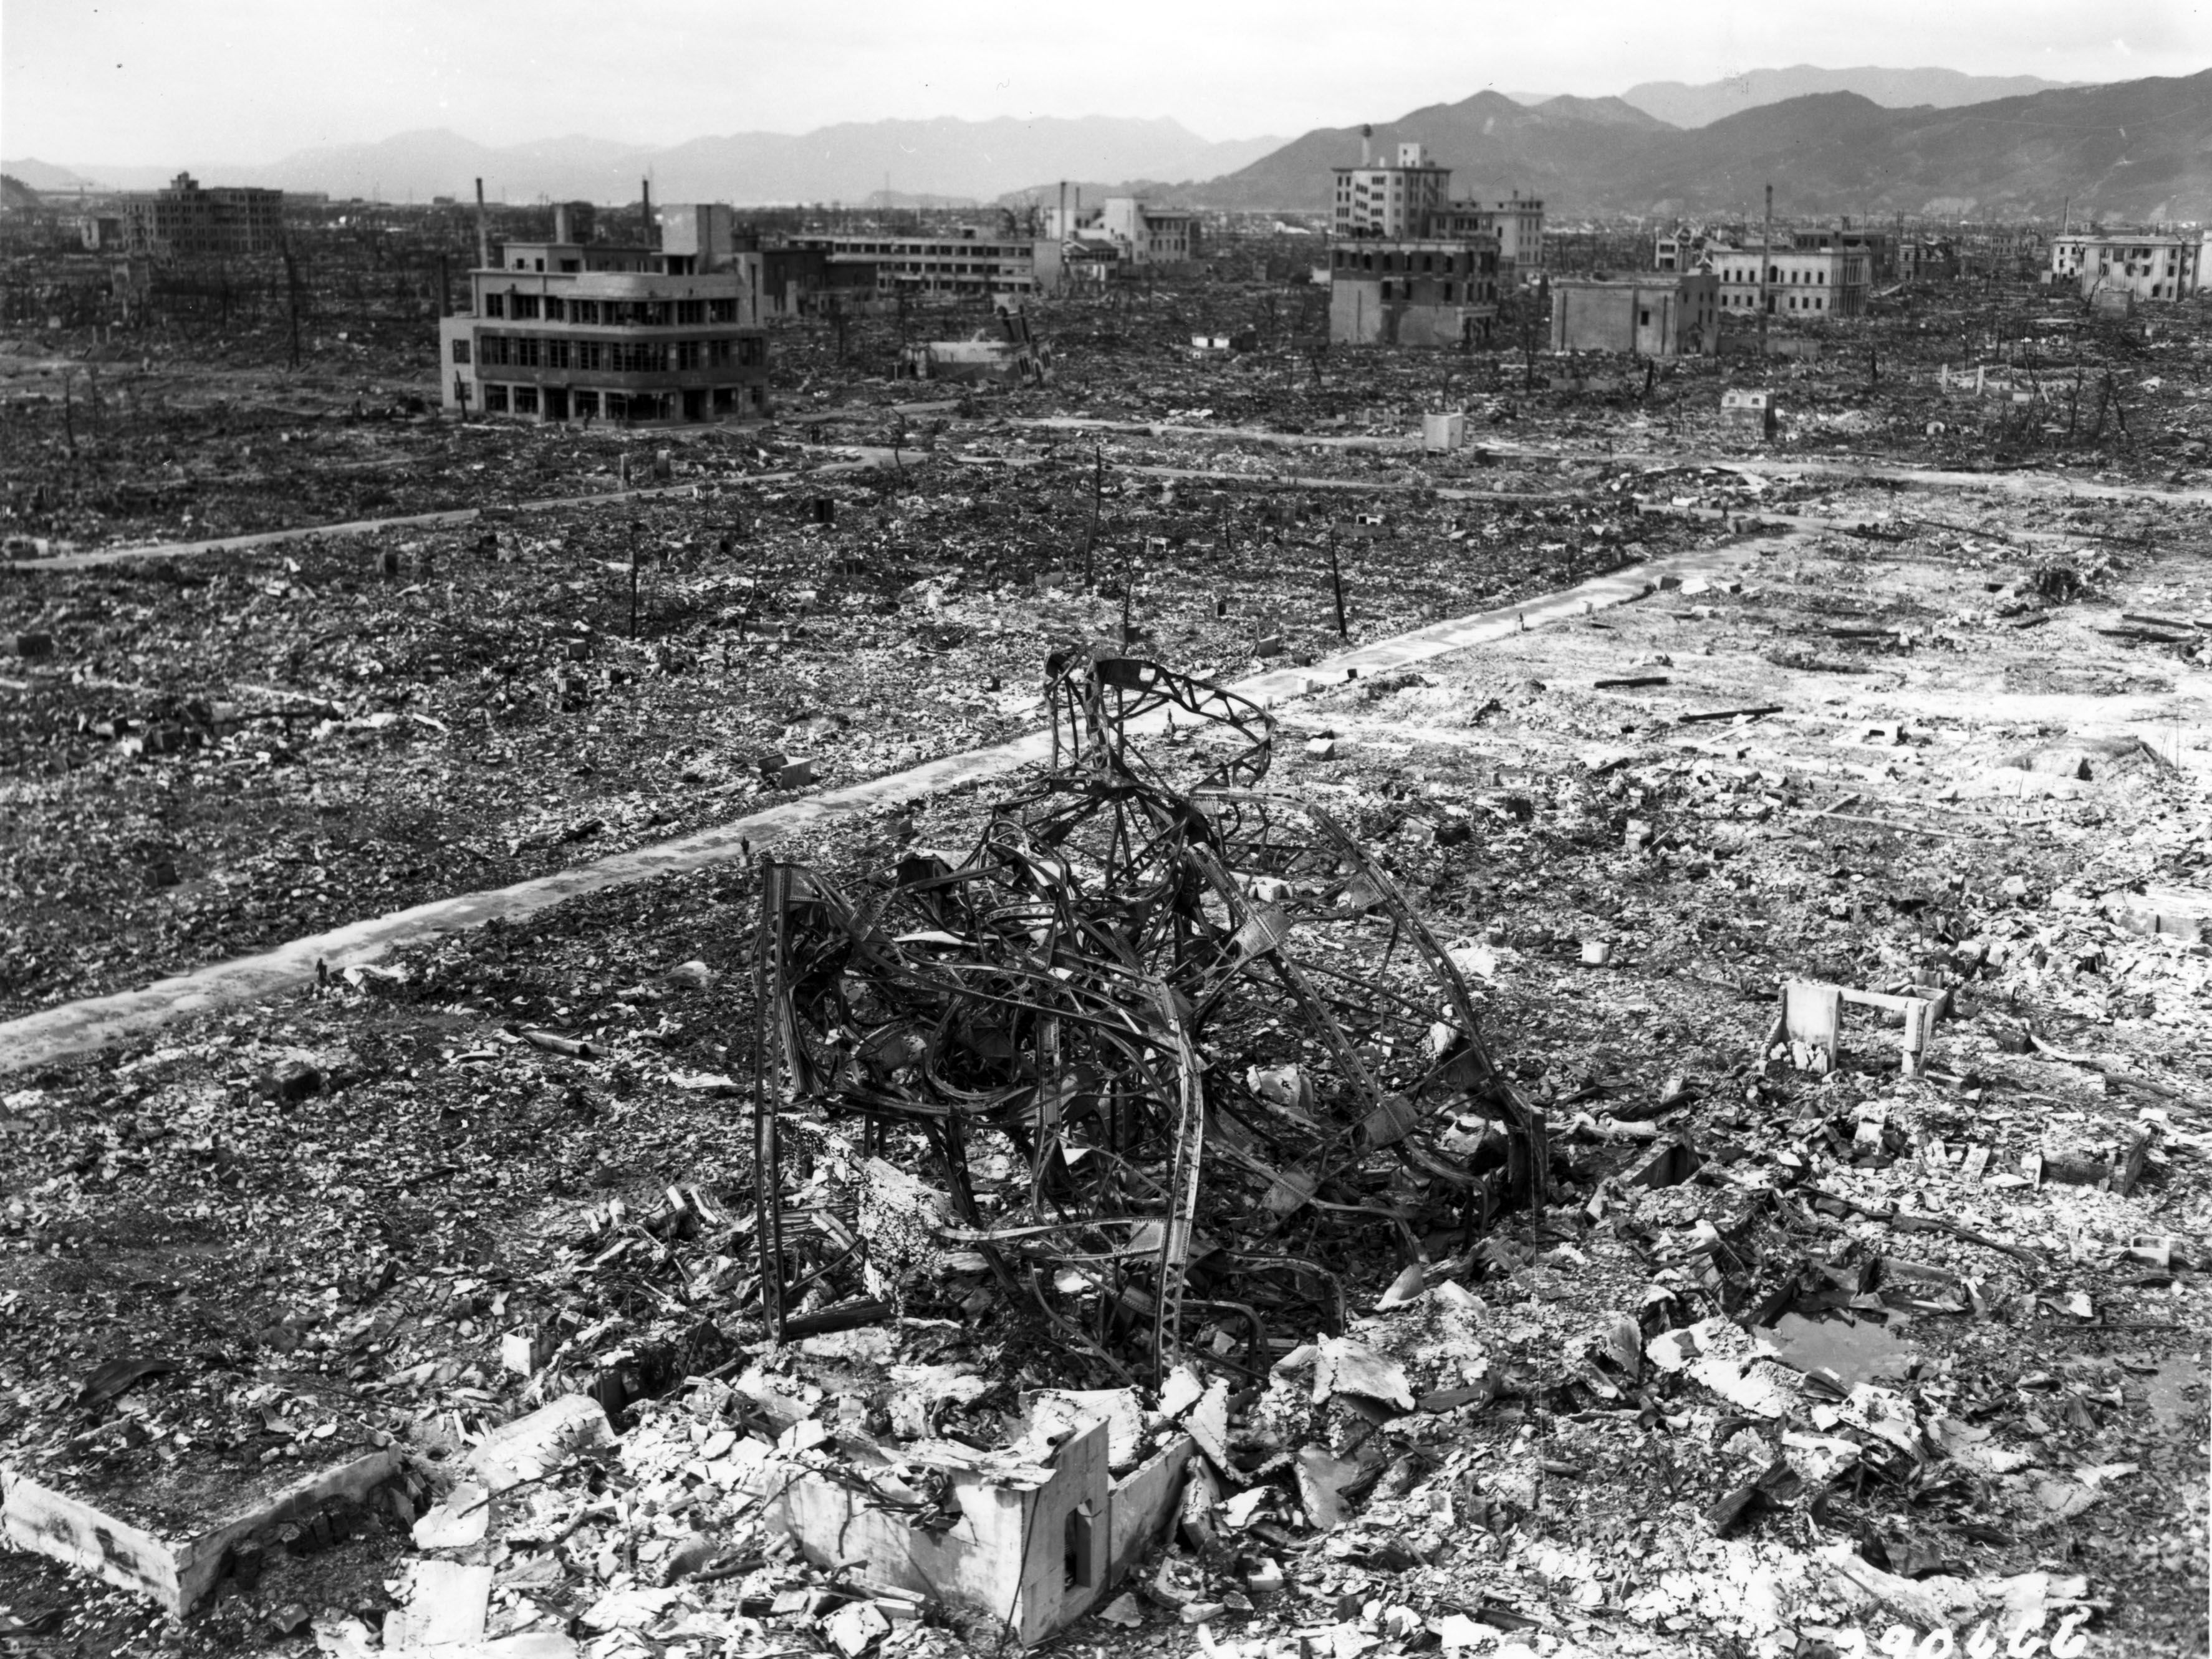 The aftermath of the bombing at Nagasaki in 1945.